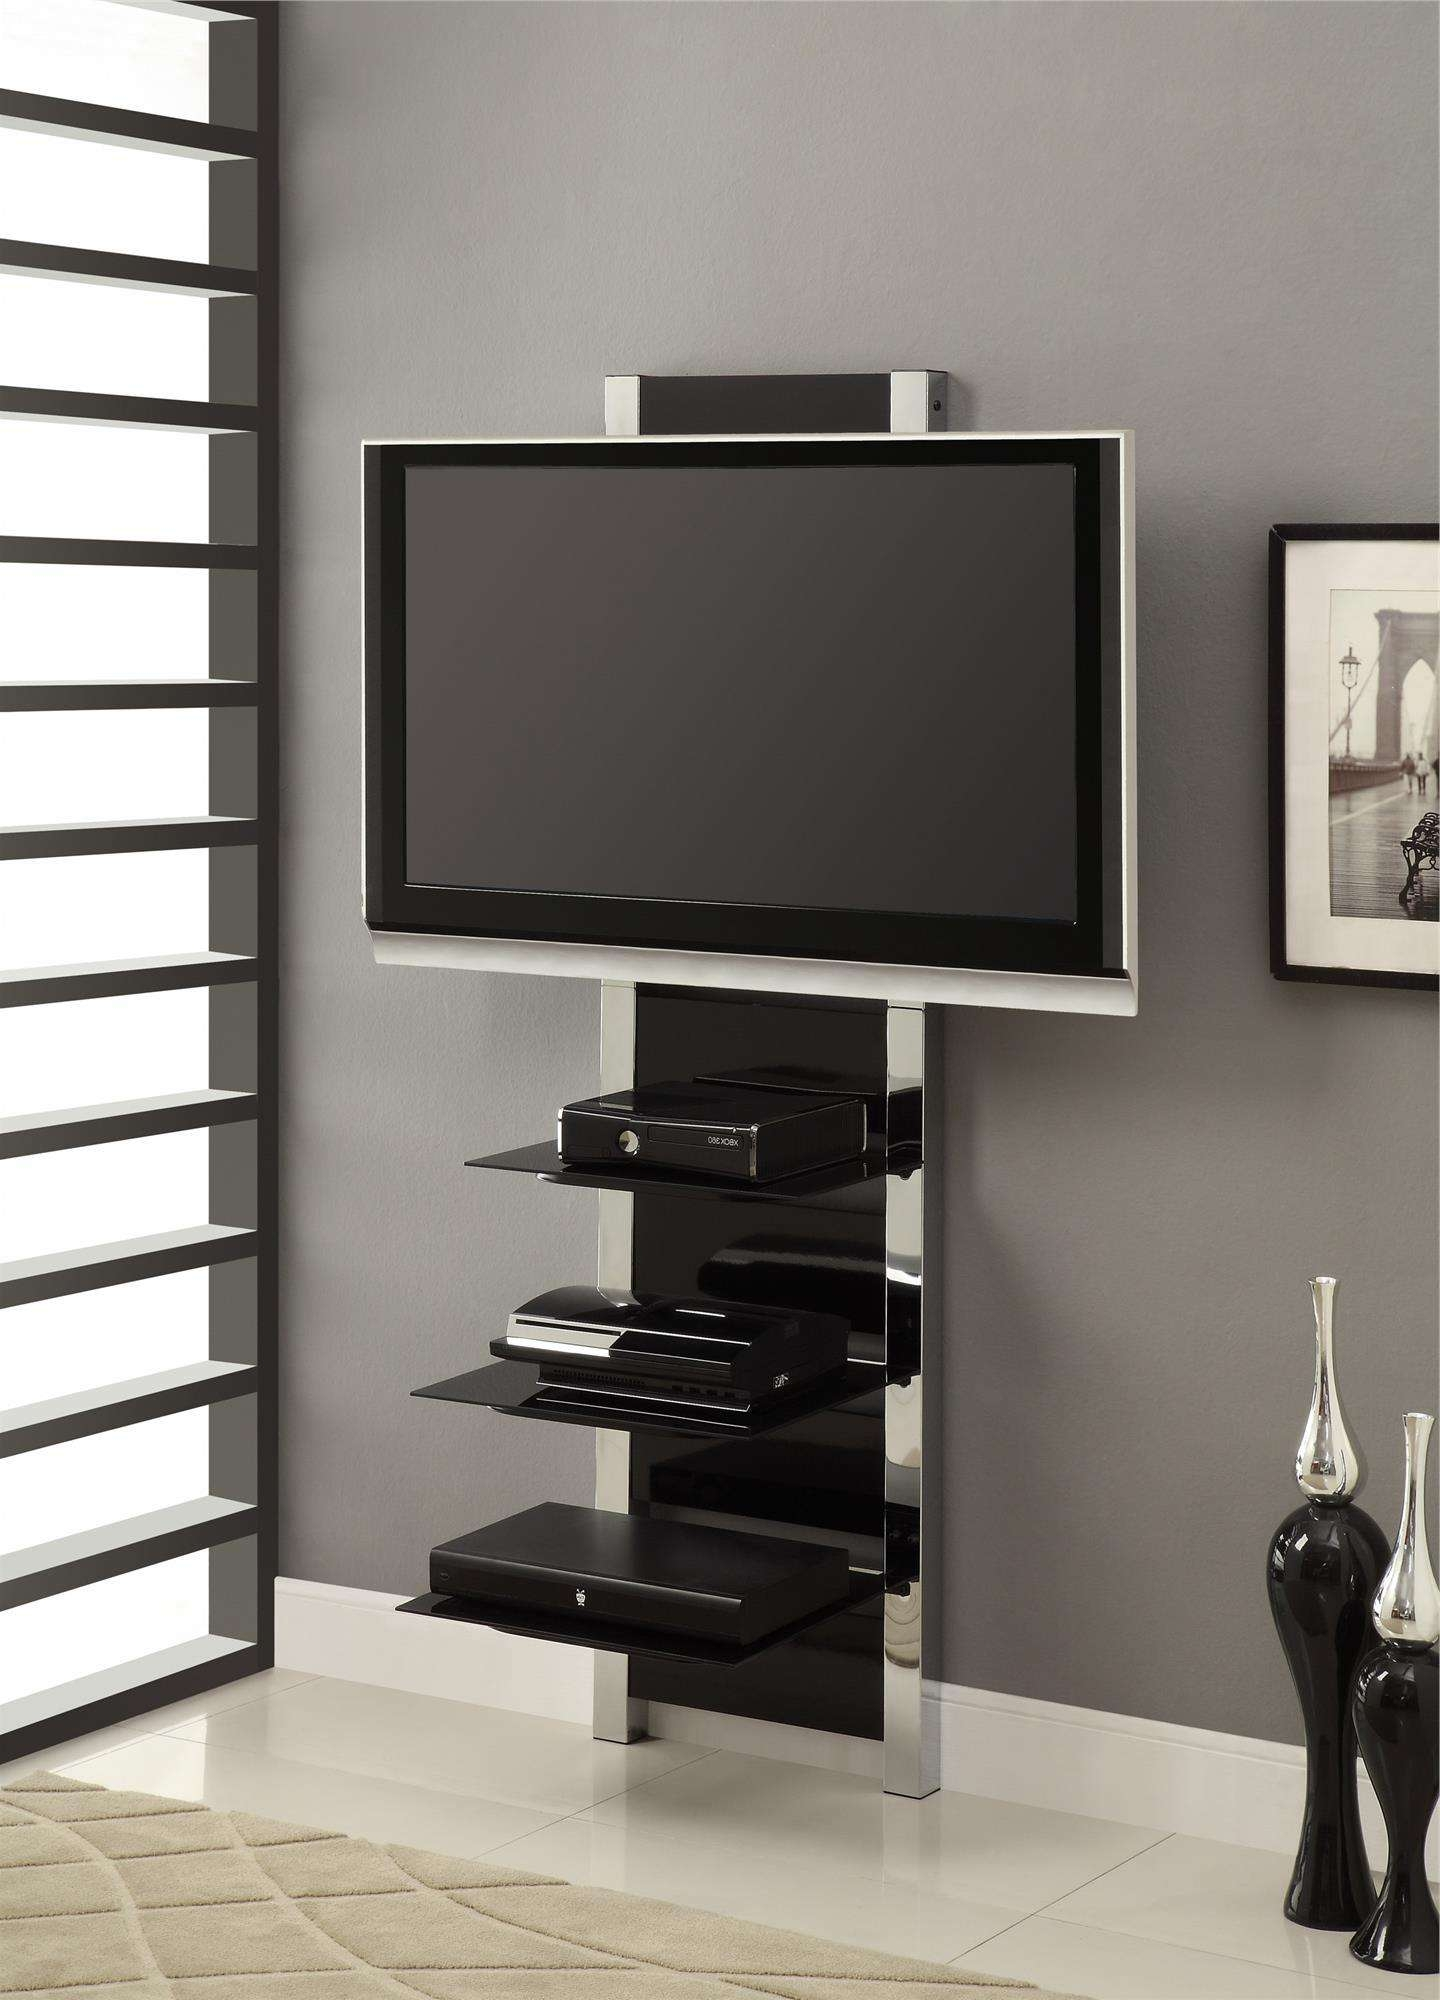 Ameriwood Furniture | Altra Furniture Altramount Modern Tv Stand Throughout Skinny Tv Stands (View 4 of 15)